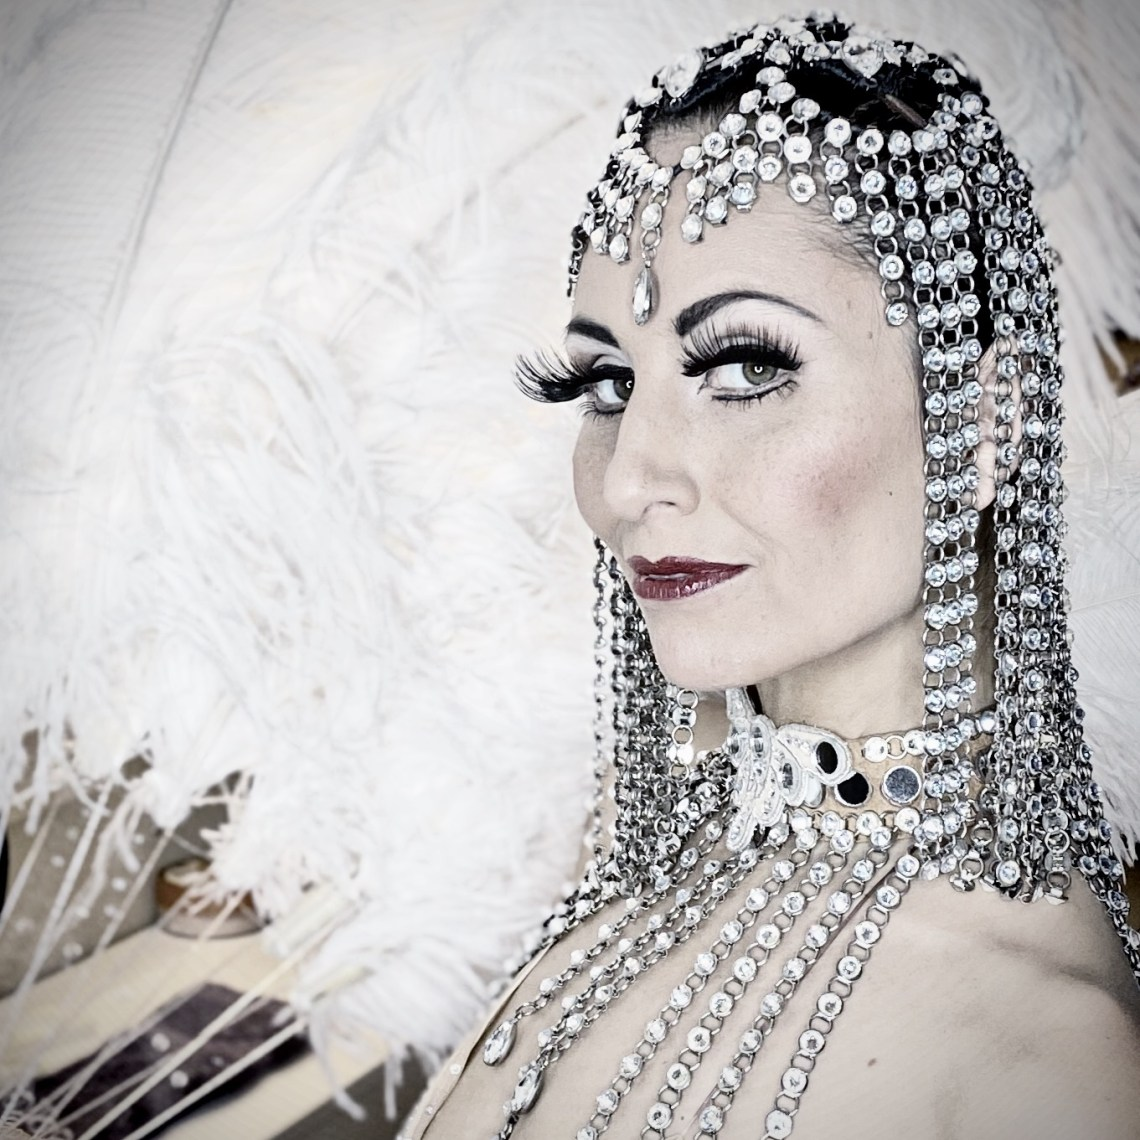 Showgirl's Life | Where Vintage Vegas Glamour Meets Immersive Experiences | Preserving the history and Art of the Showgirl | Athena, aka Gazella